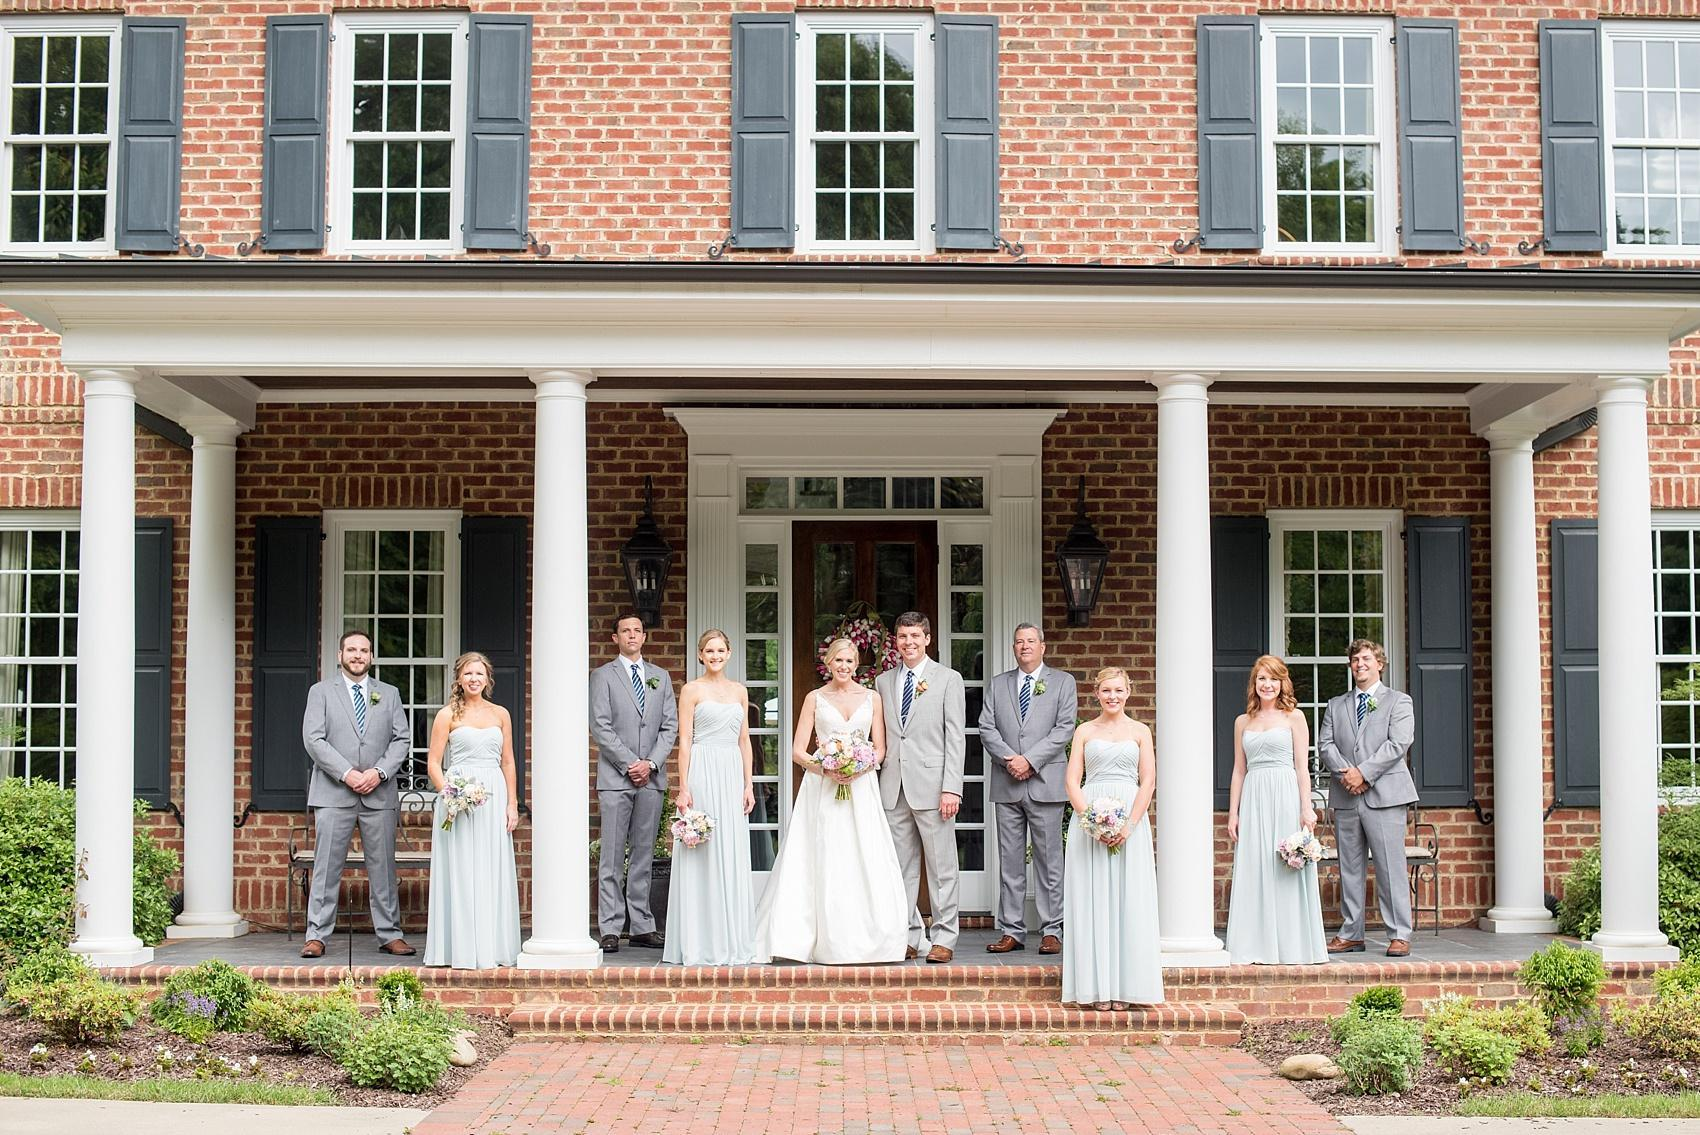 Mikkel Paige Photography photos of a downtown Raleigh Market Hall wedding with pictures of bridal party in blue gowns and groomsmen in grey suits. Wedding party on the porch!